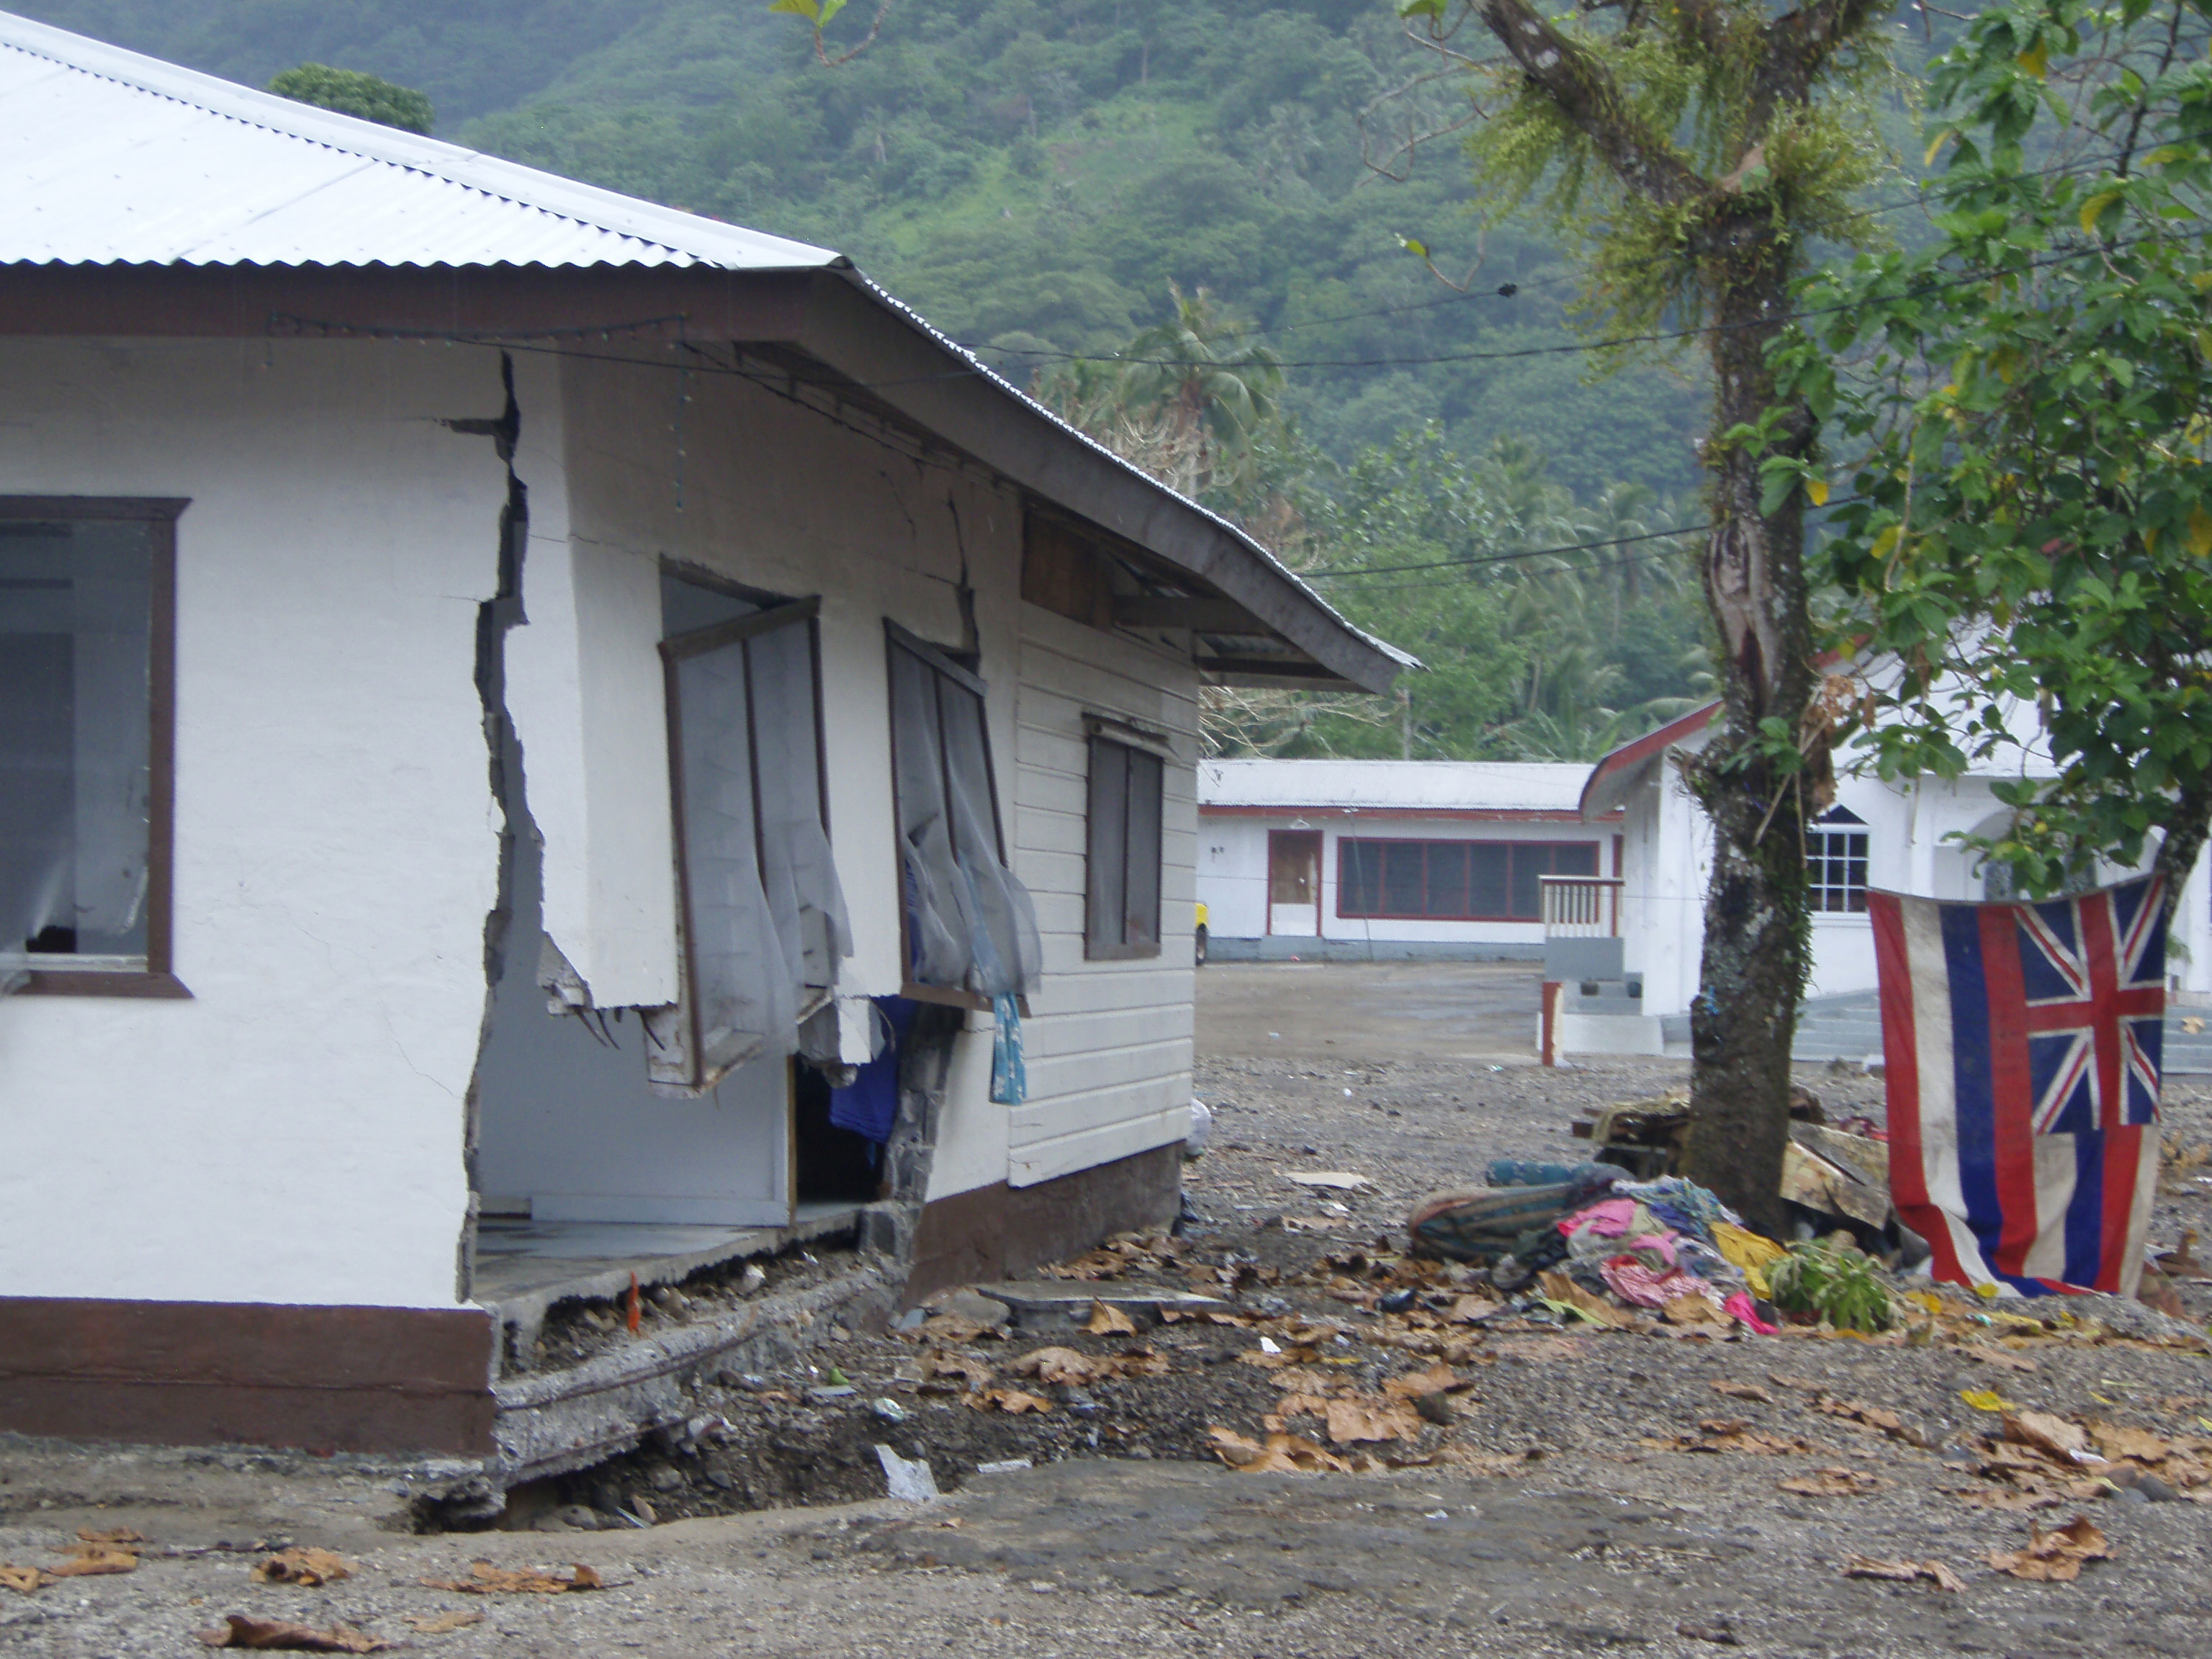 Photos from 2009 Samoan Islands earthquake